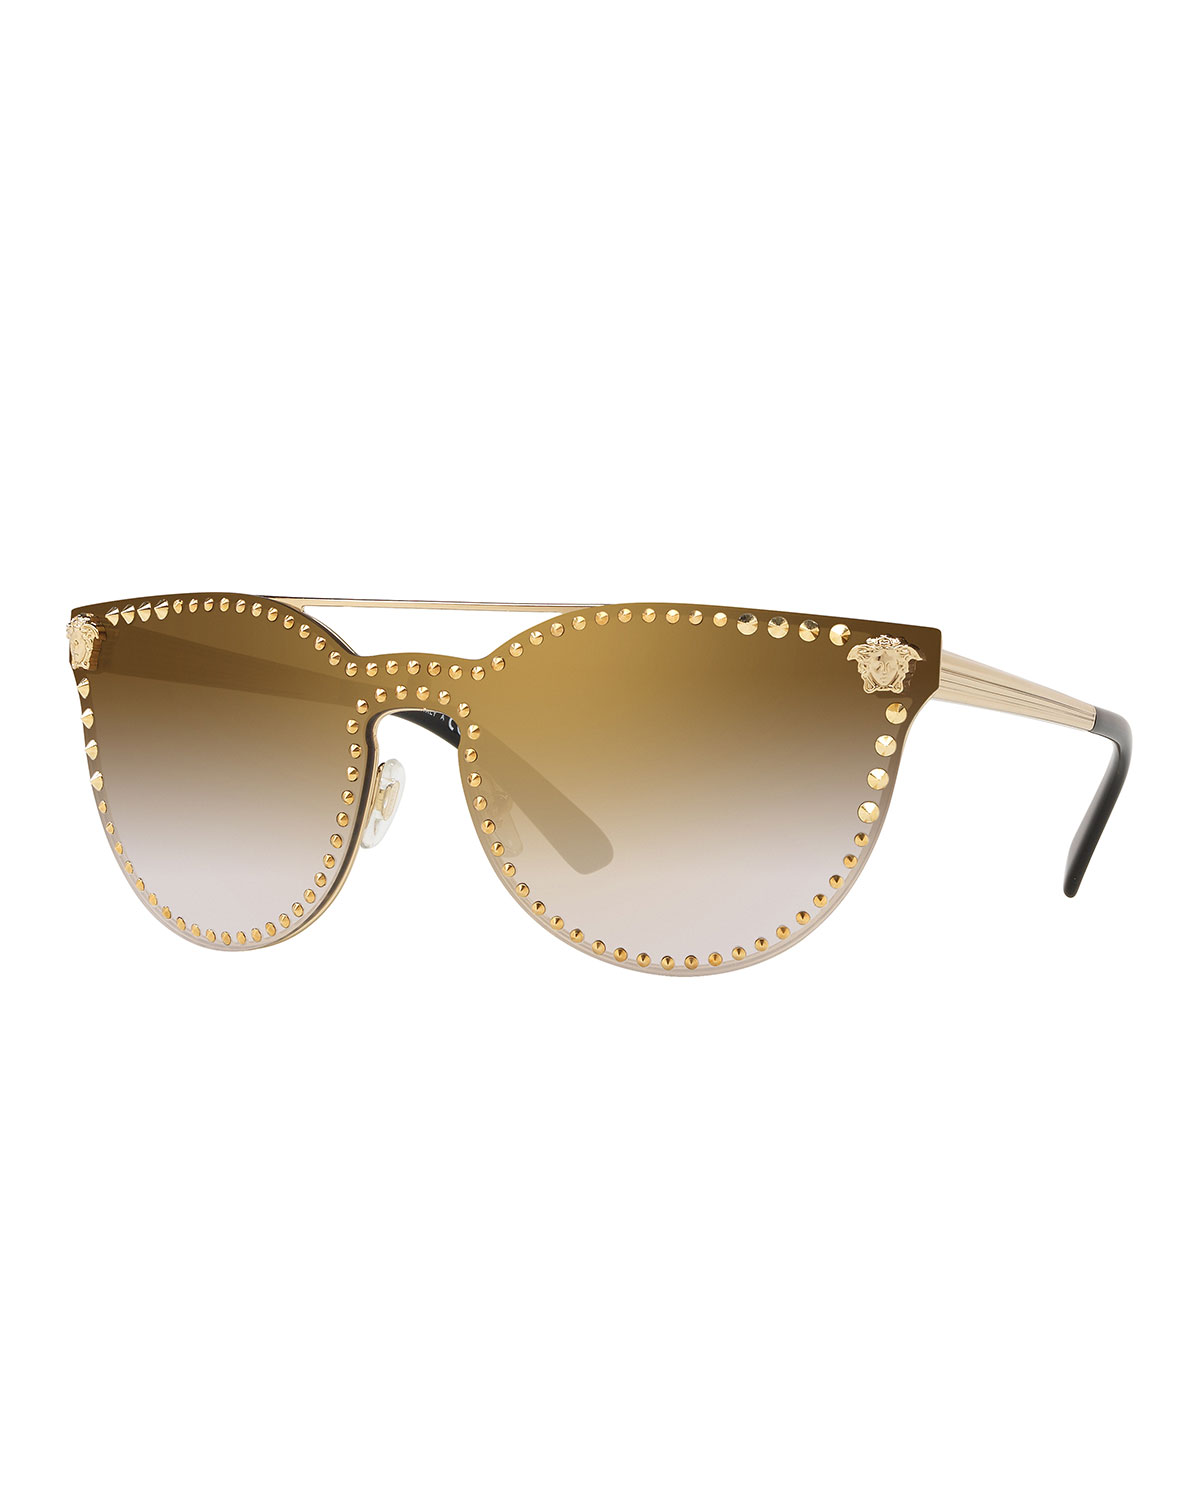 a8aeee8218 Versace Men s Metal-Studded Sunglasses